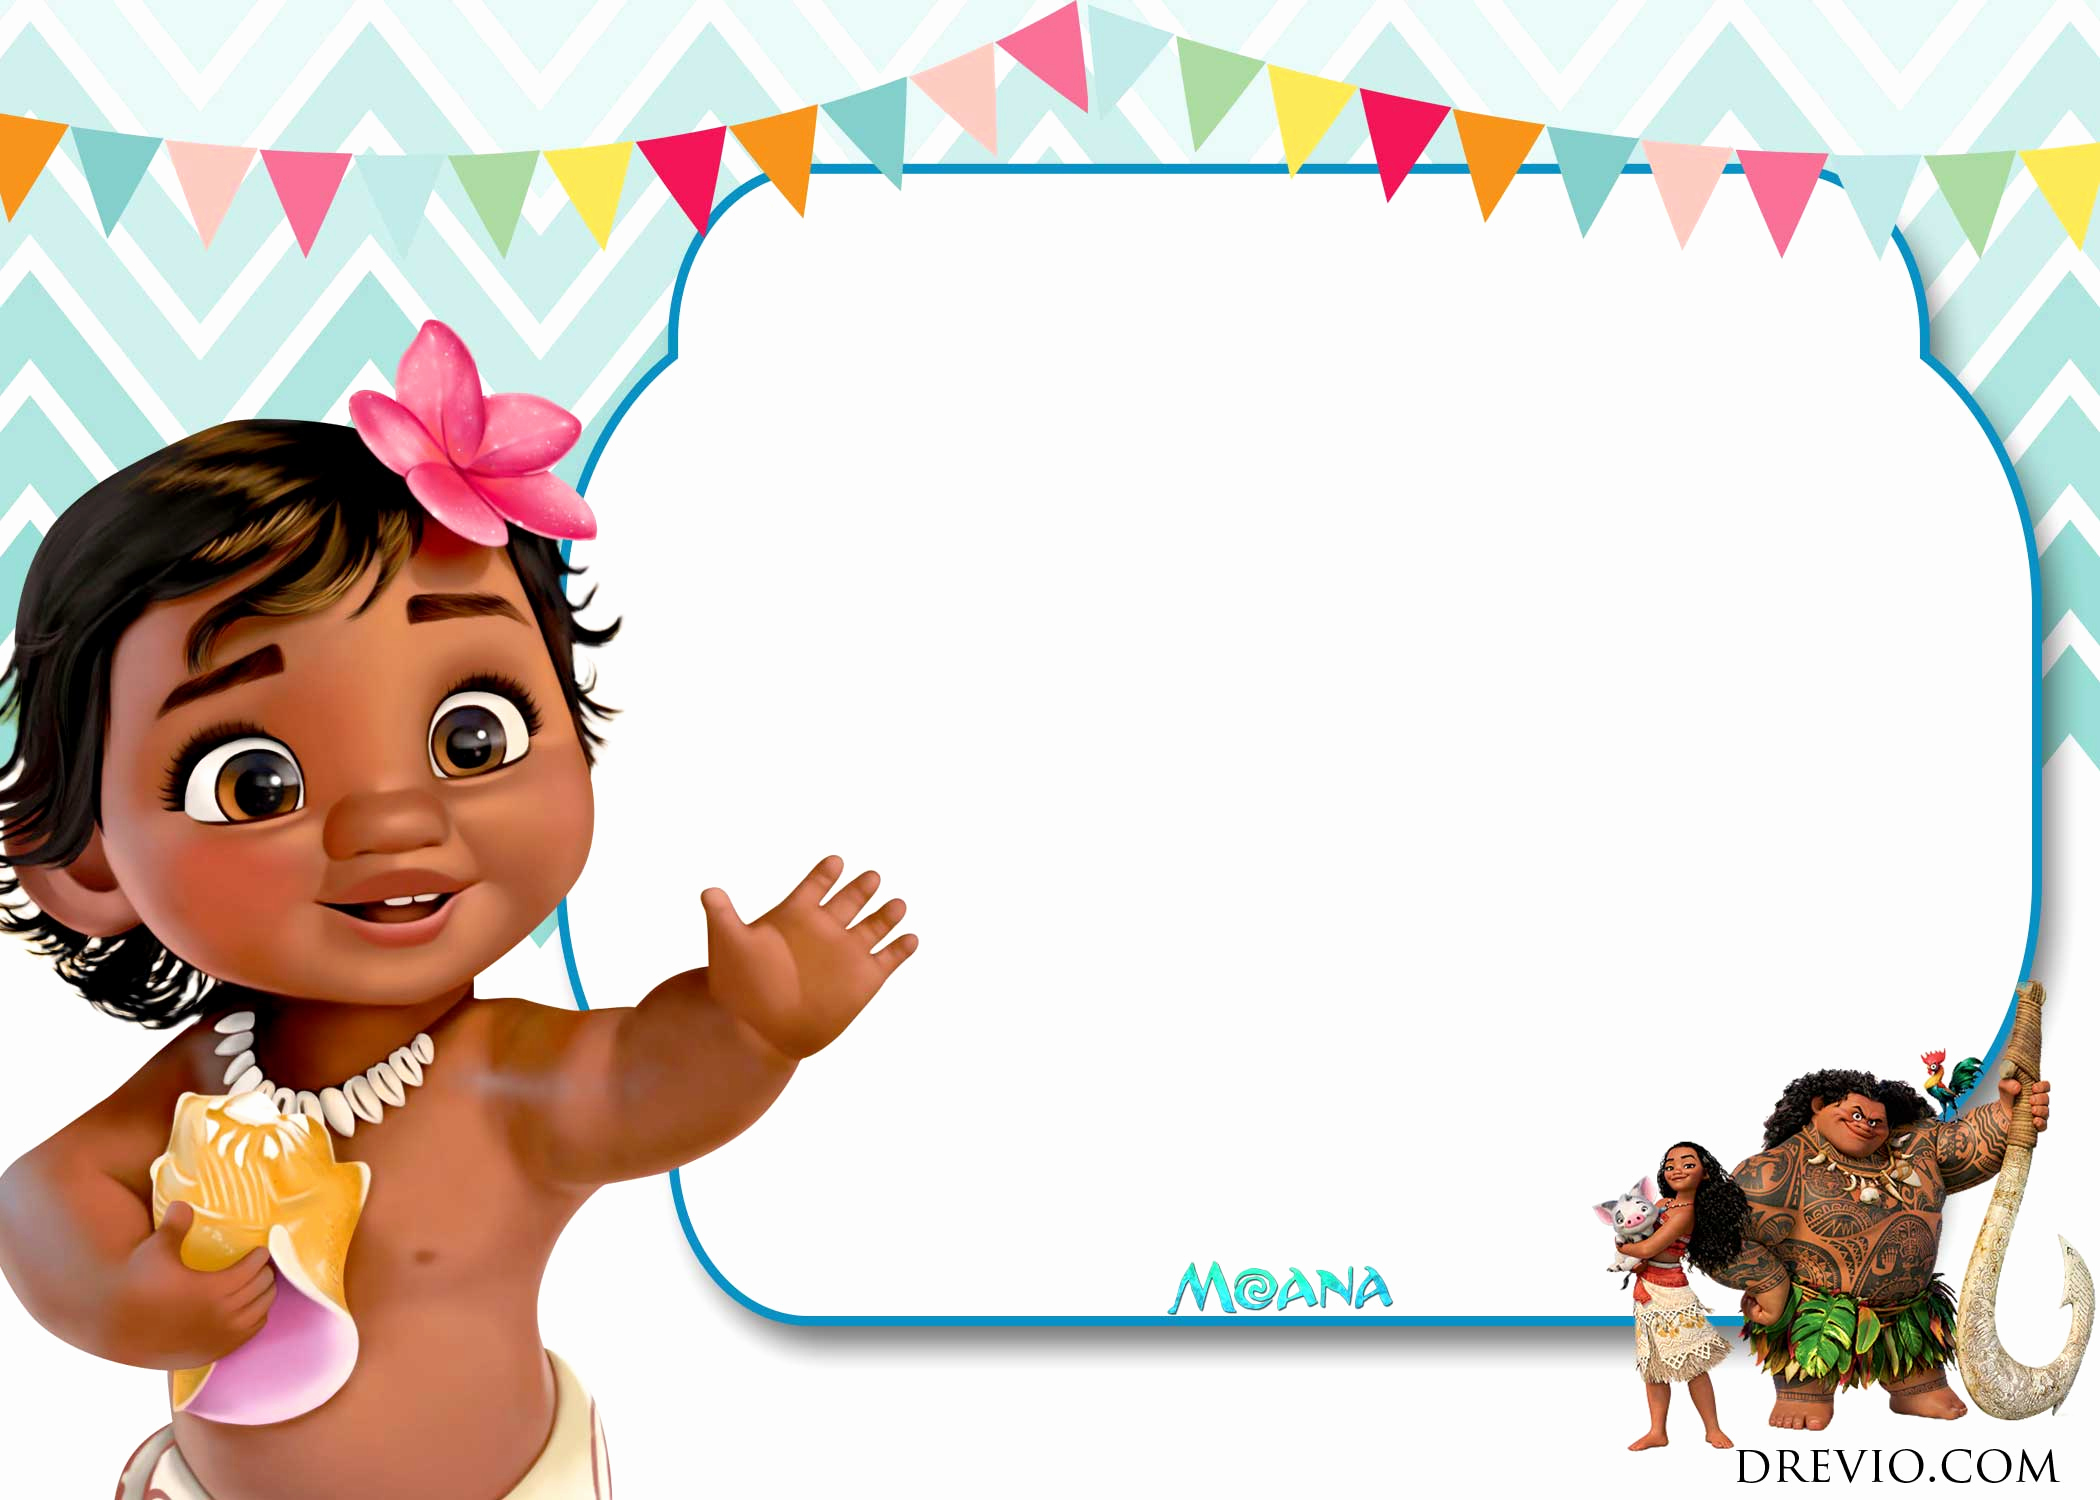 Moana Invitation Template Free Beautiful Free Moana Birthday Invitation Template Free Invitation